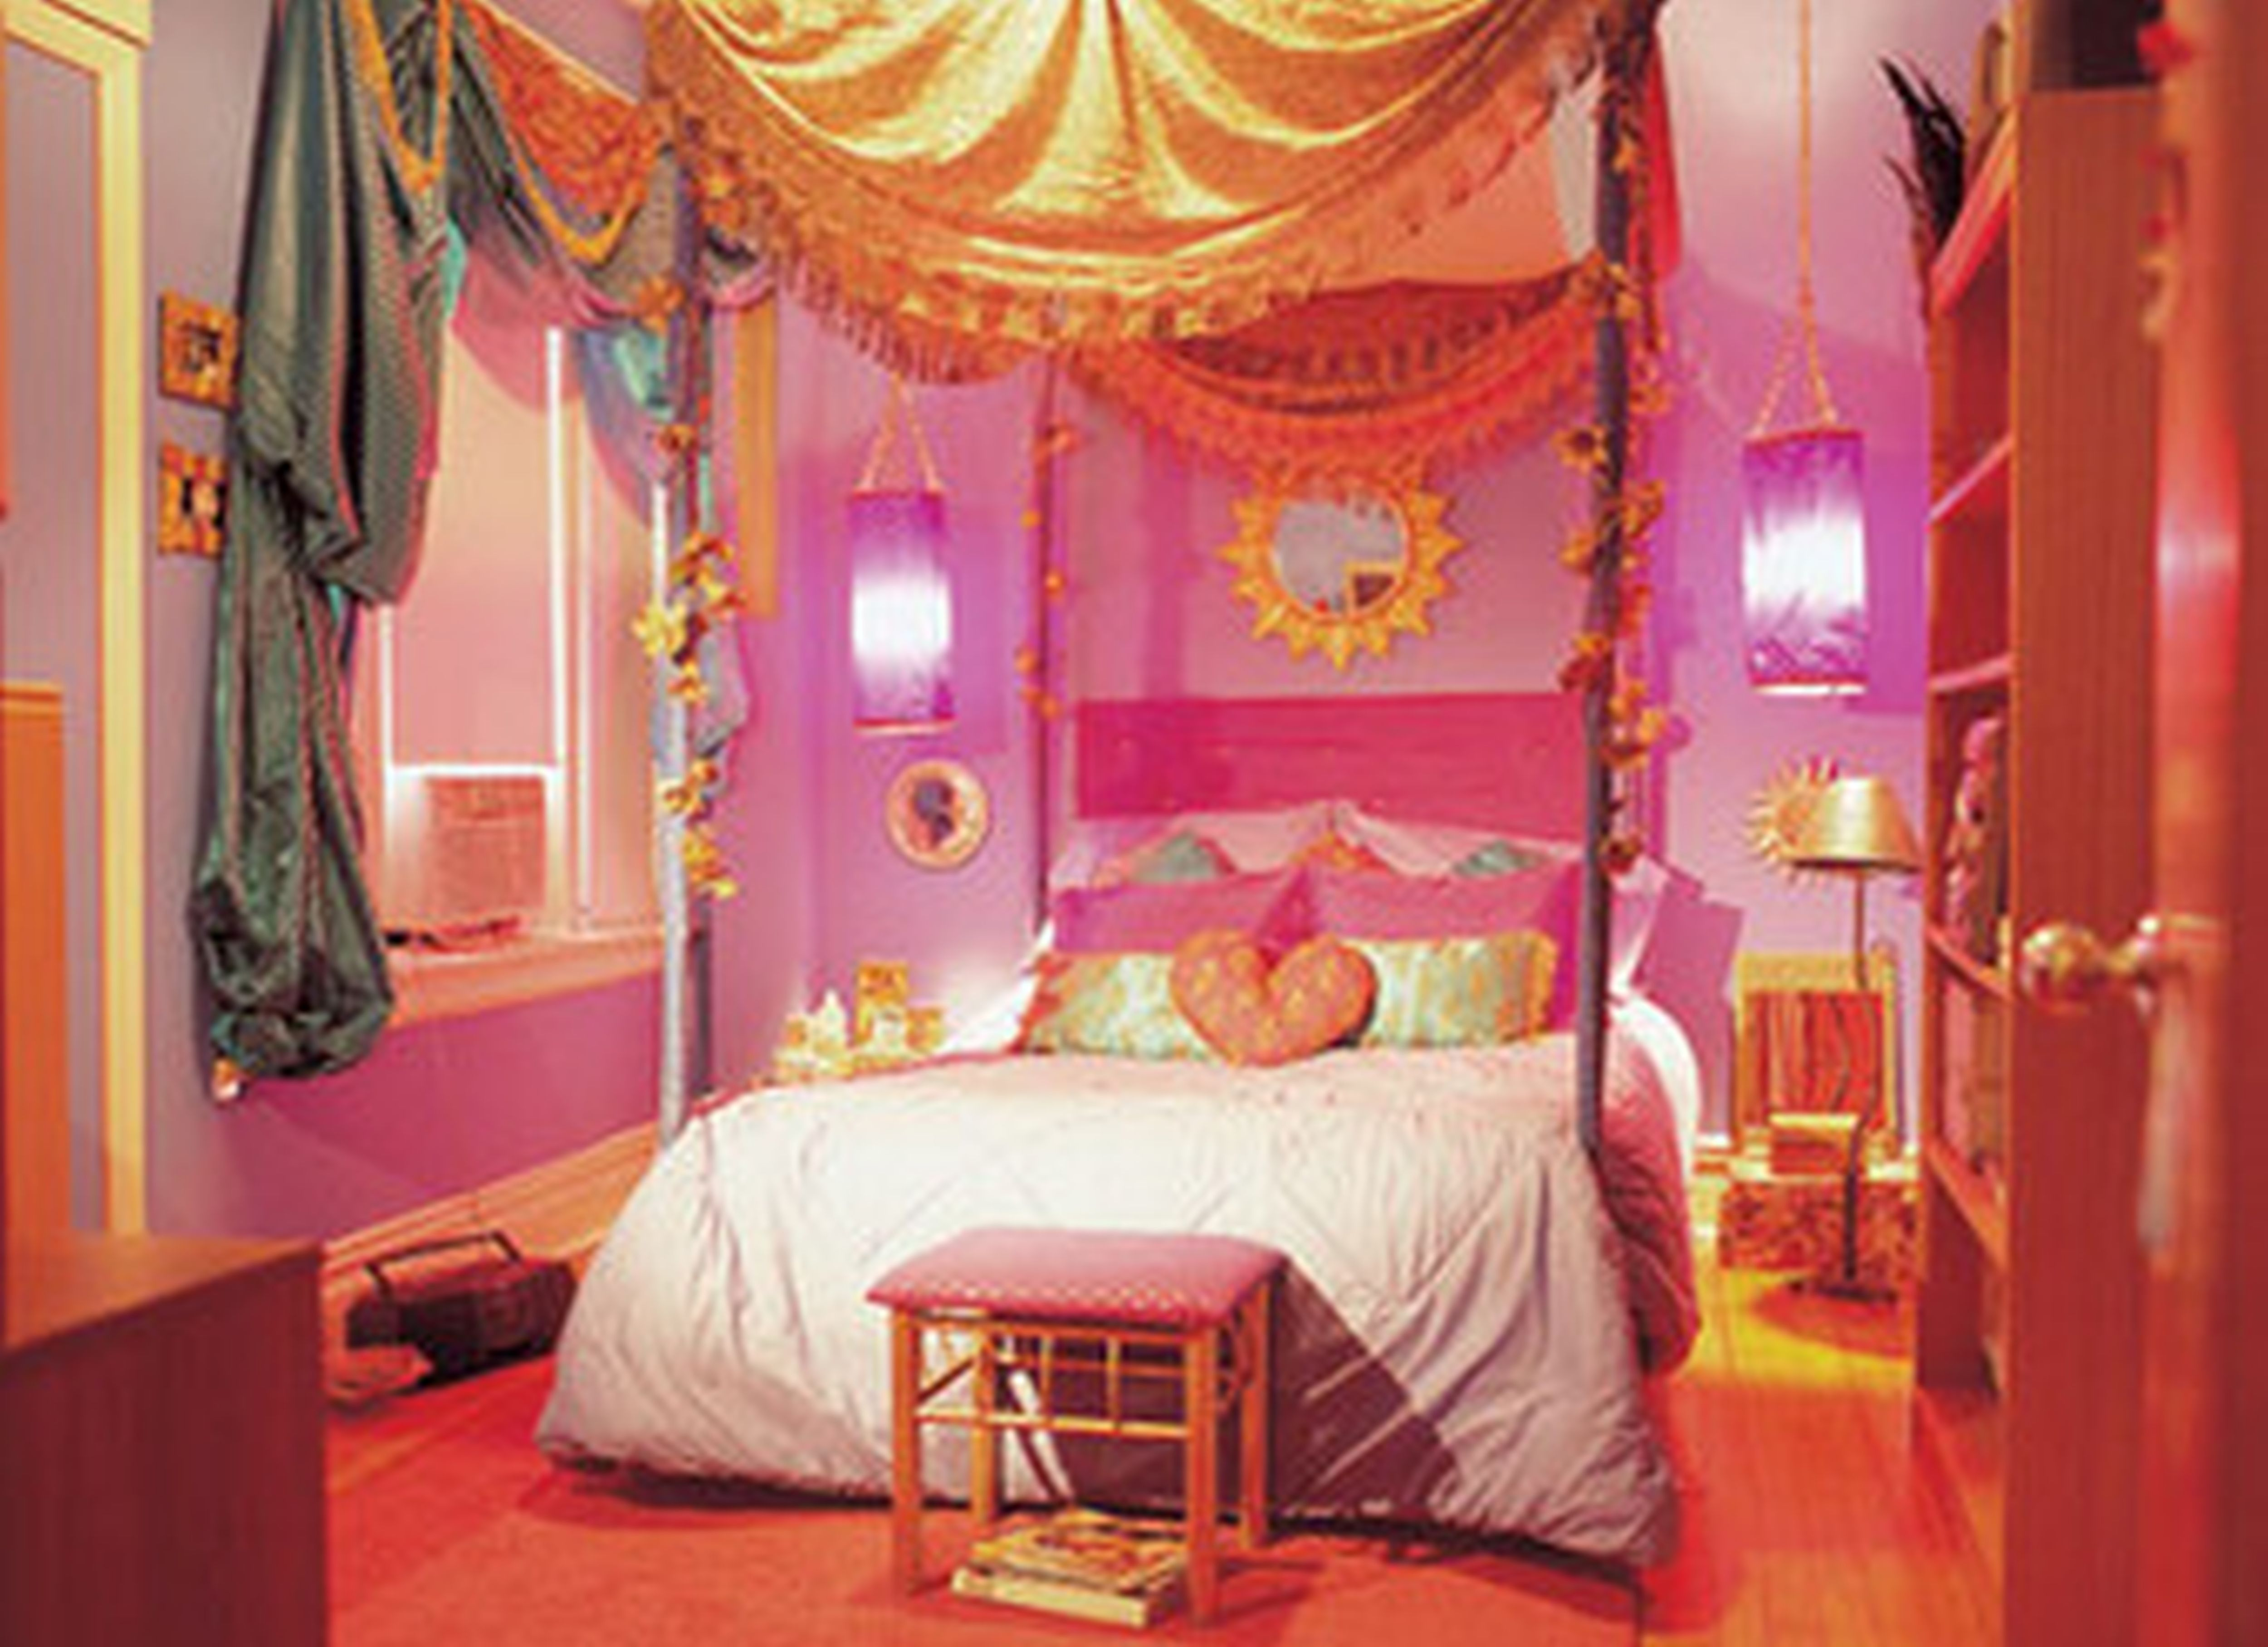 Canopy Bedroom Sets Girls elegant girls canopy bed designs sets - http://katrinahousing